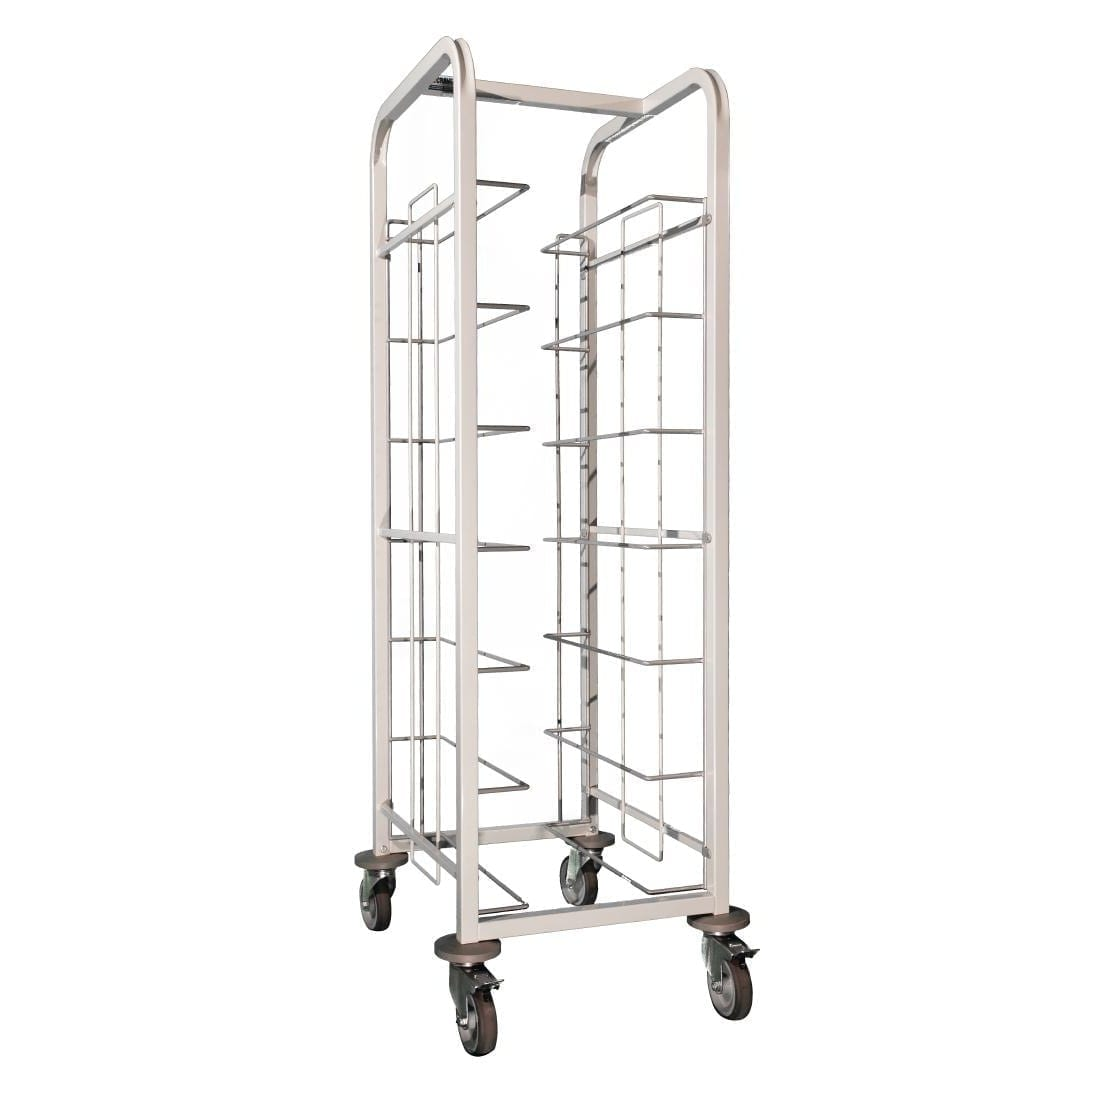 Craven Tray Clearing Trolley (7 level 170mm spacing) (Direct)-0